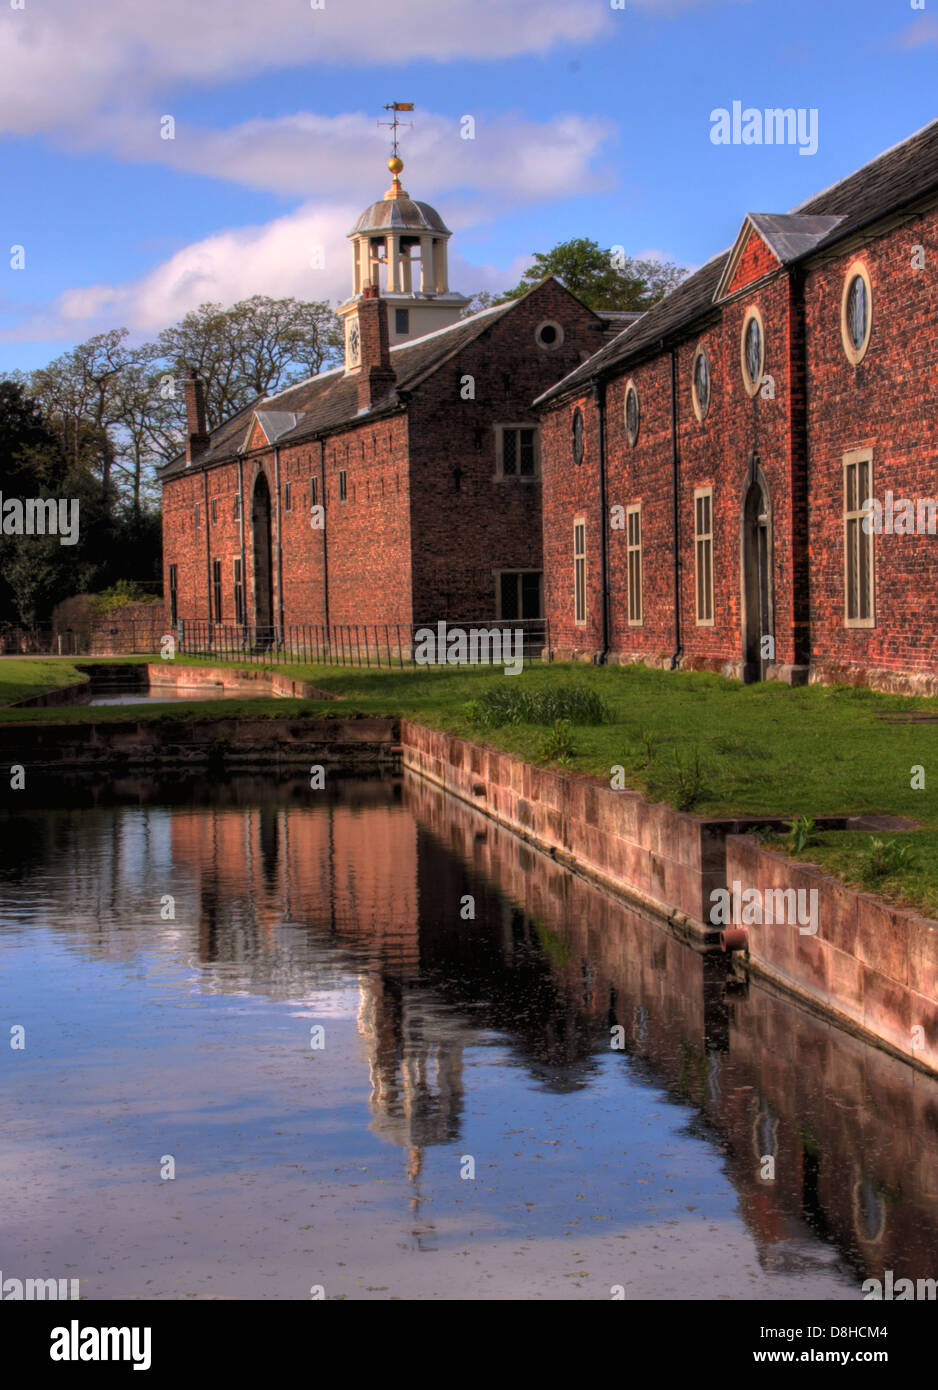 Masey,Cheshire,deer,park,national,trust,reflection,reflections,Stanford,Stamford,WA14,4SJ,WA144SJ,Georgian,house,Catherine,Cocks,Warrington,house,water,millpond,pool,water,garden,rose,old,buildings,architecture,fine,places,to,visit,tourist,tourism,gotonysmith,Buy Pictures of,Buy Images Of